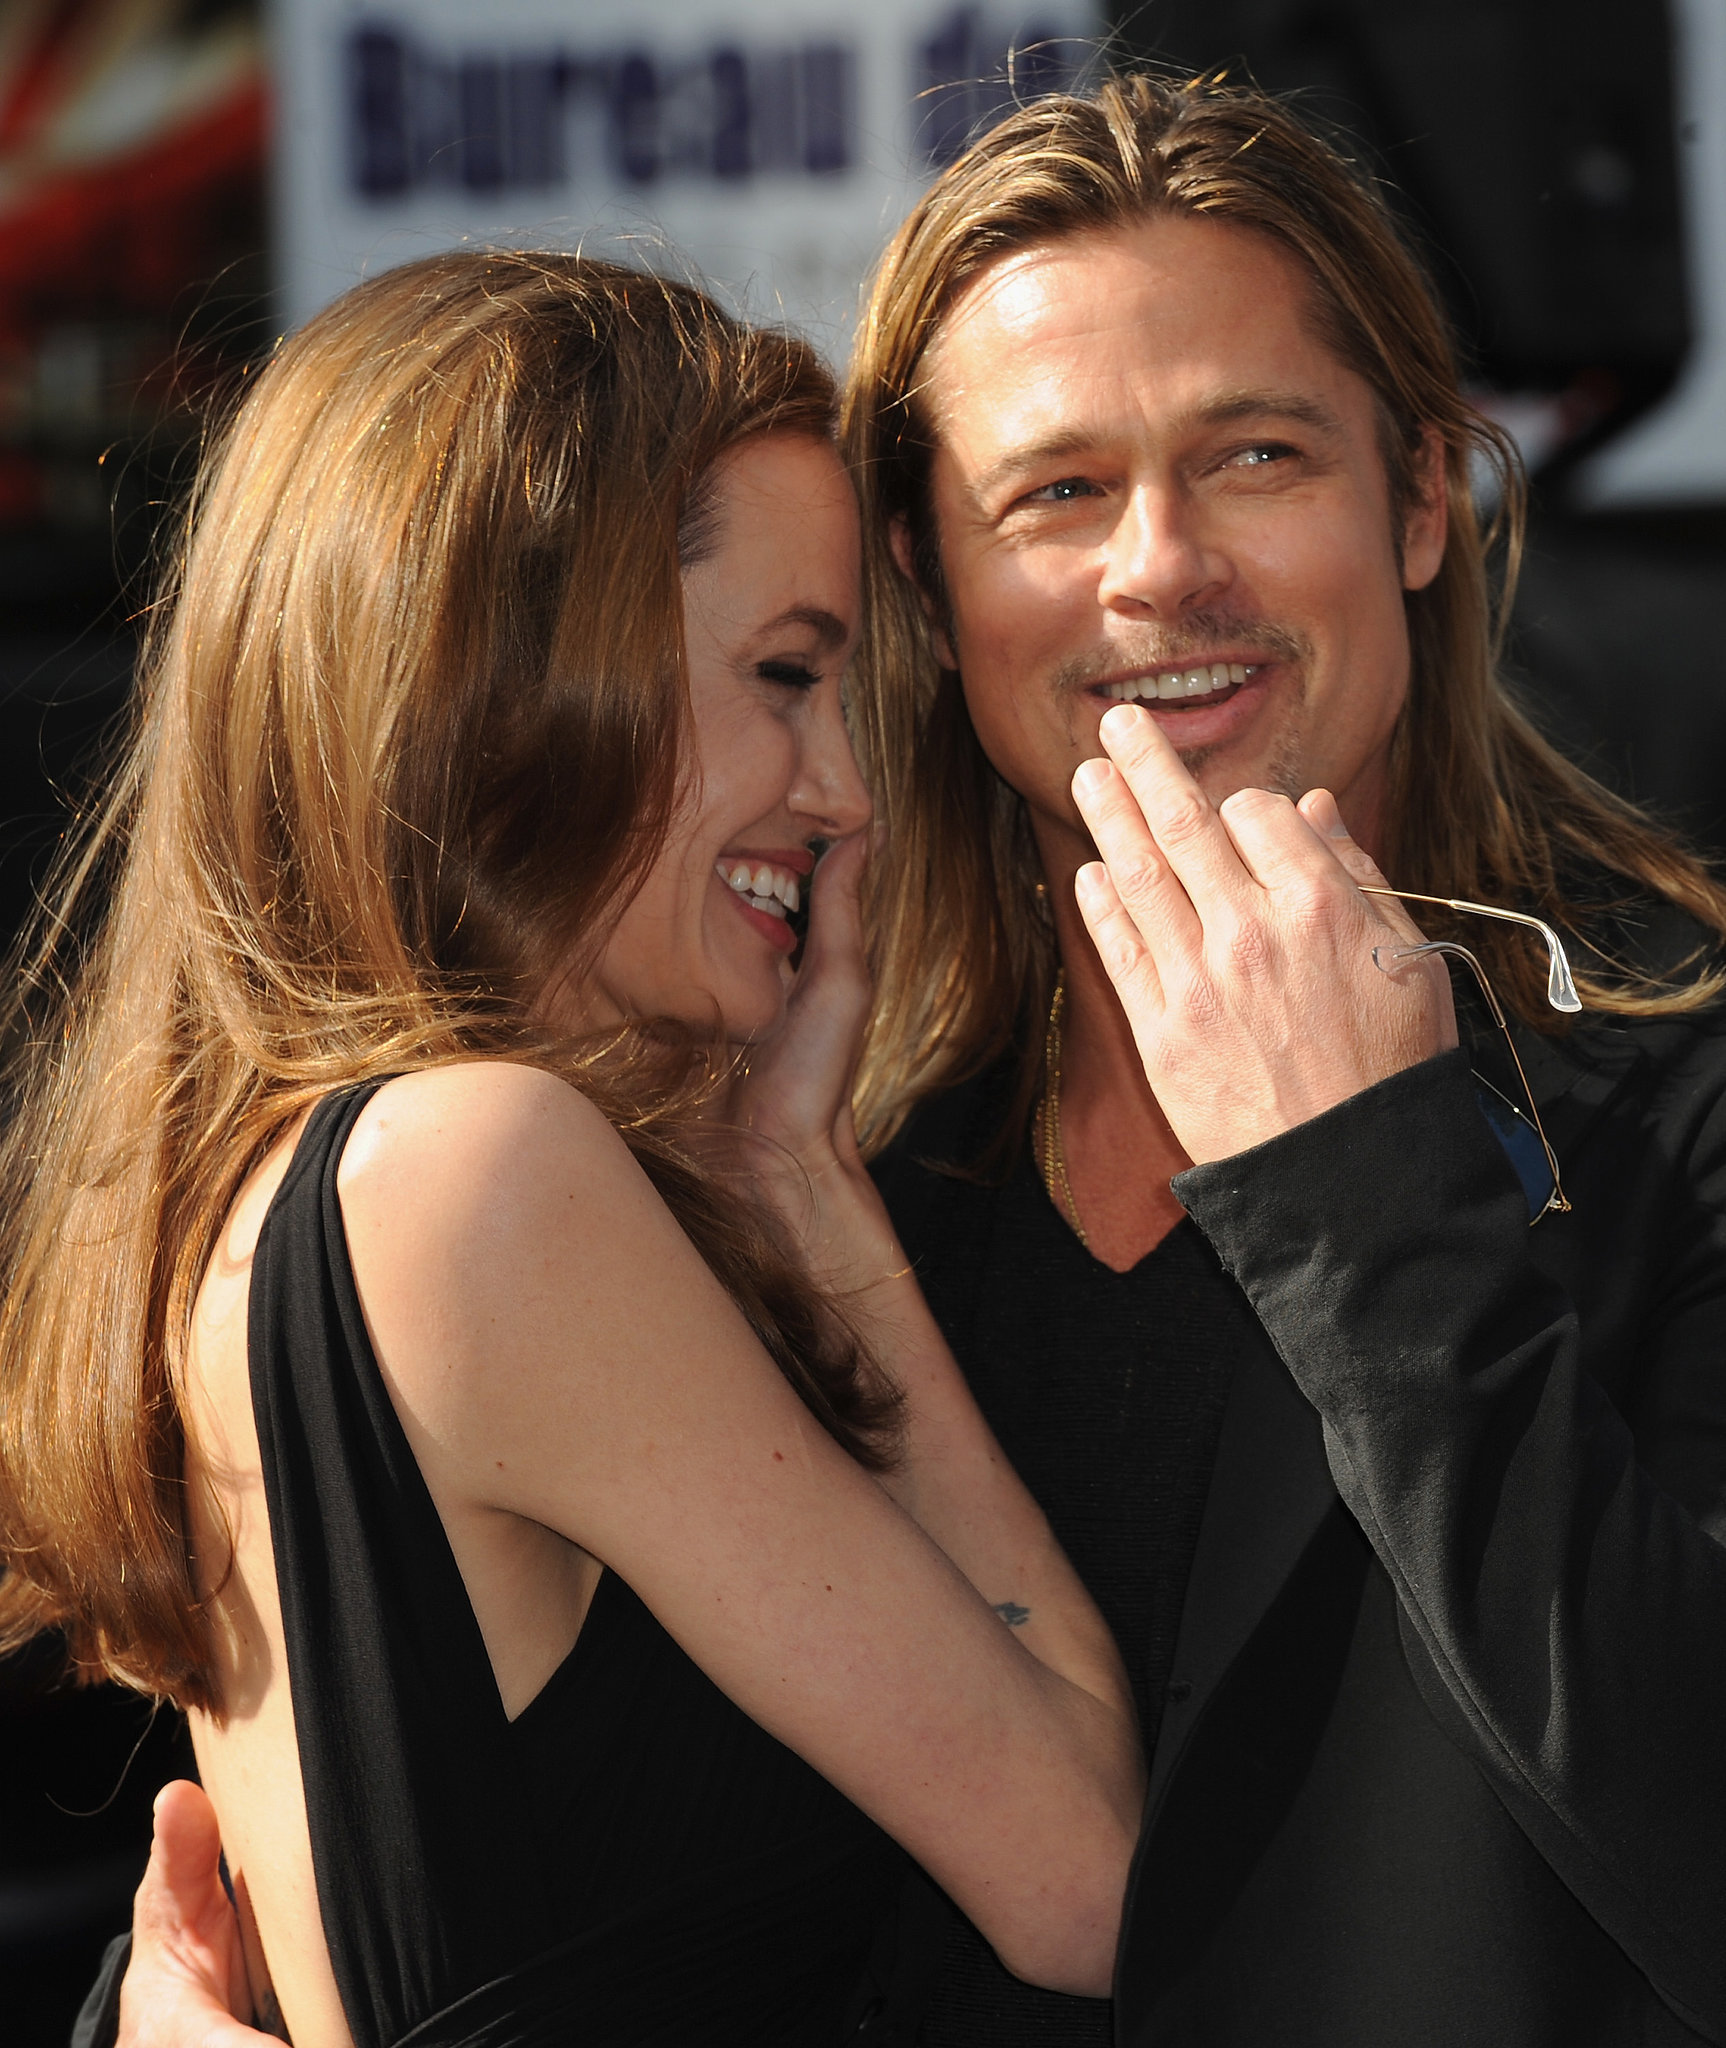 They were all smiles while arriving at the London premiere of World War Z in June 2013.